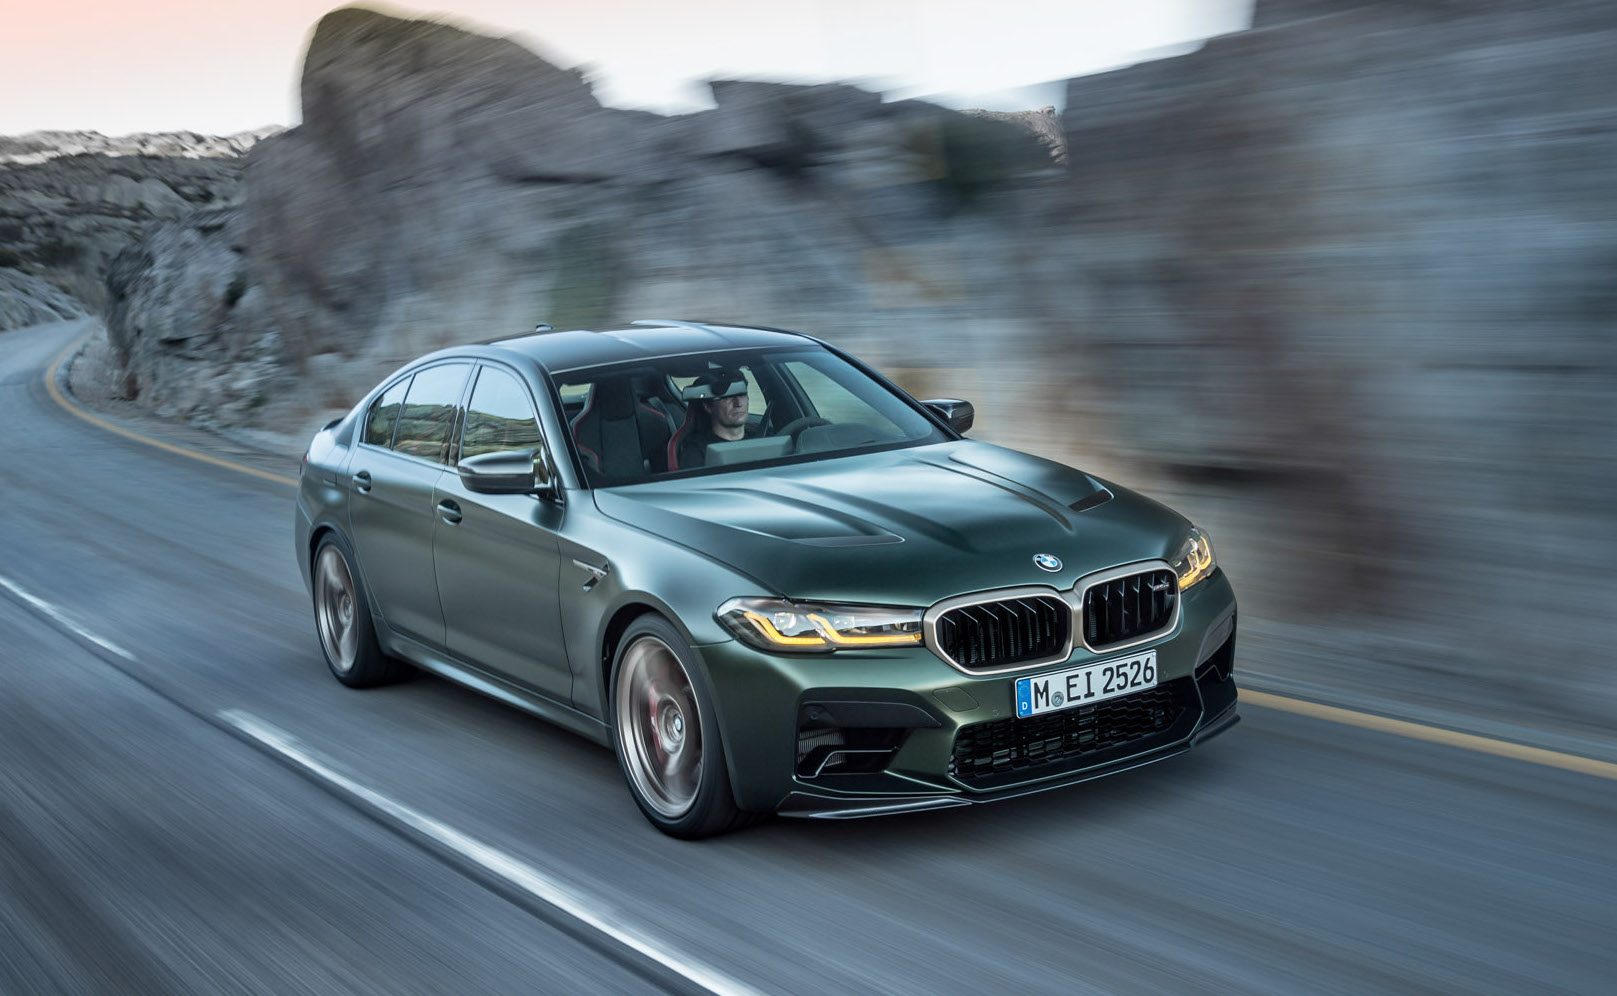 Introducing The First Ever Bmw M5 Cs M5post Bmw M5 Forum F90